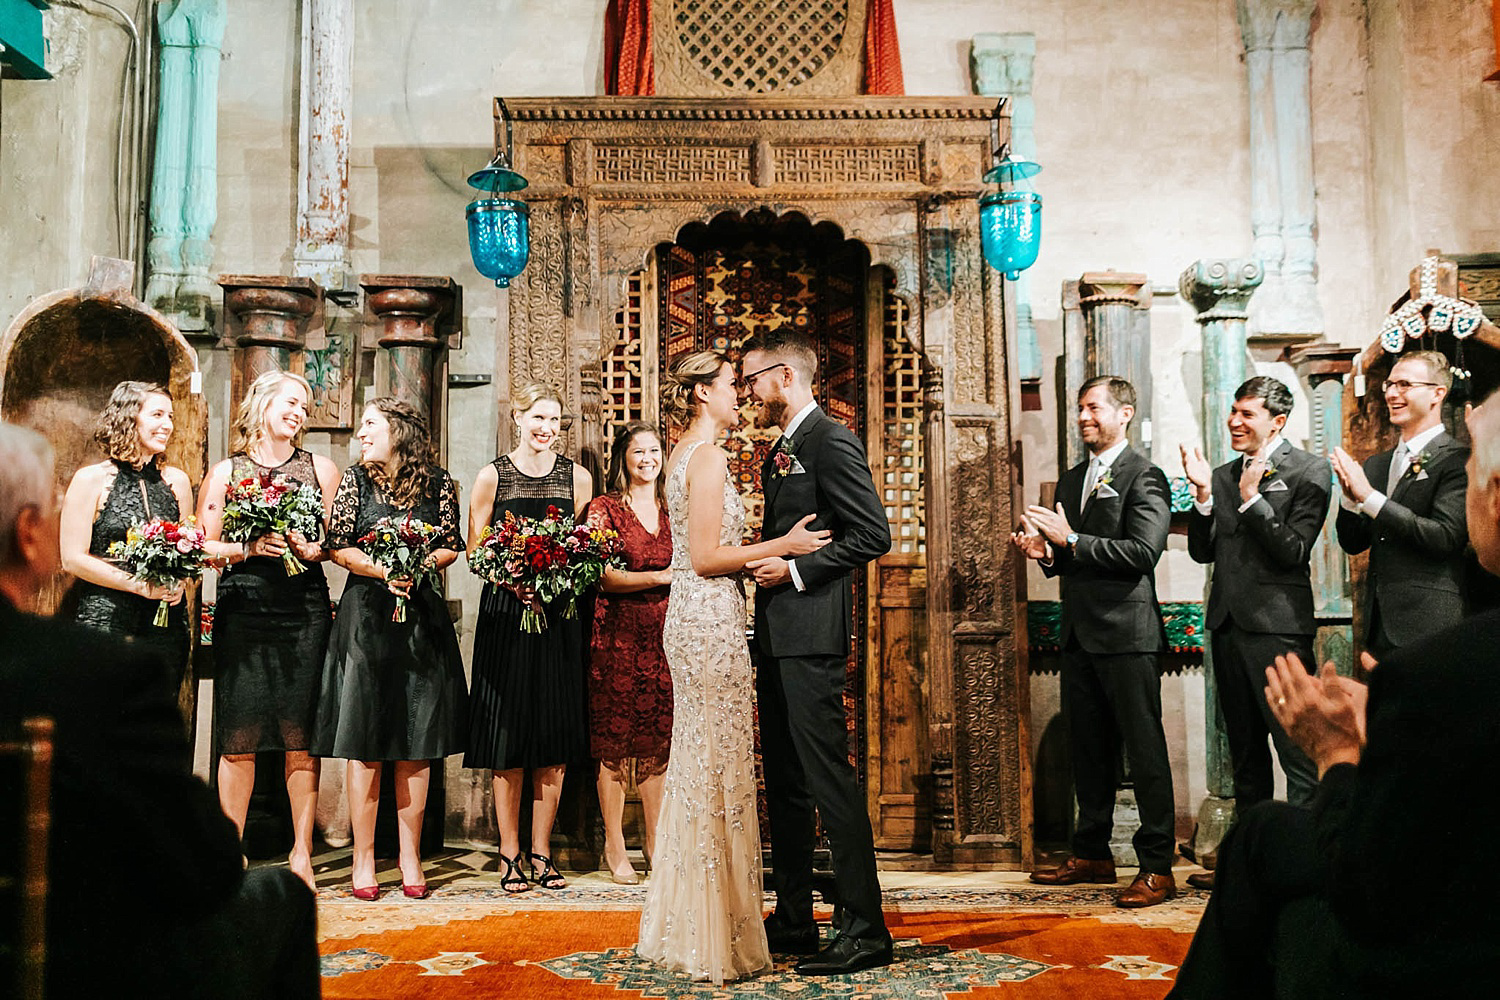 Wedding first kiss at material culture